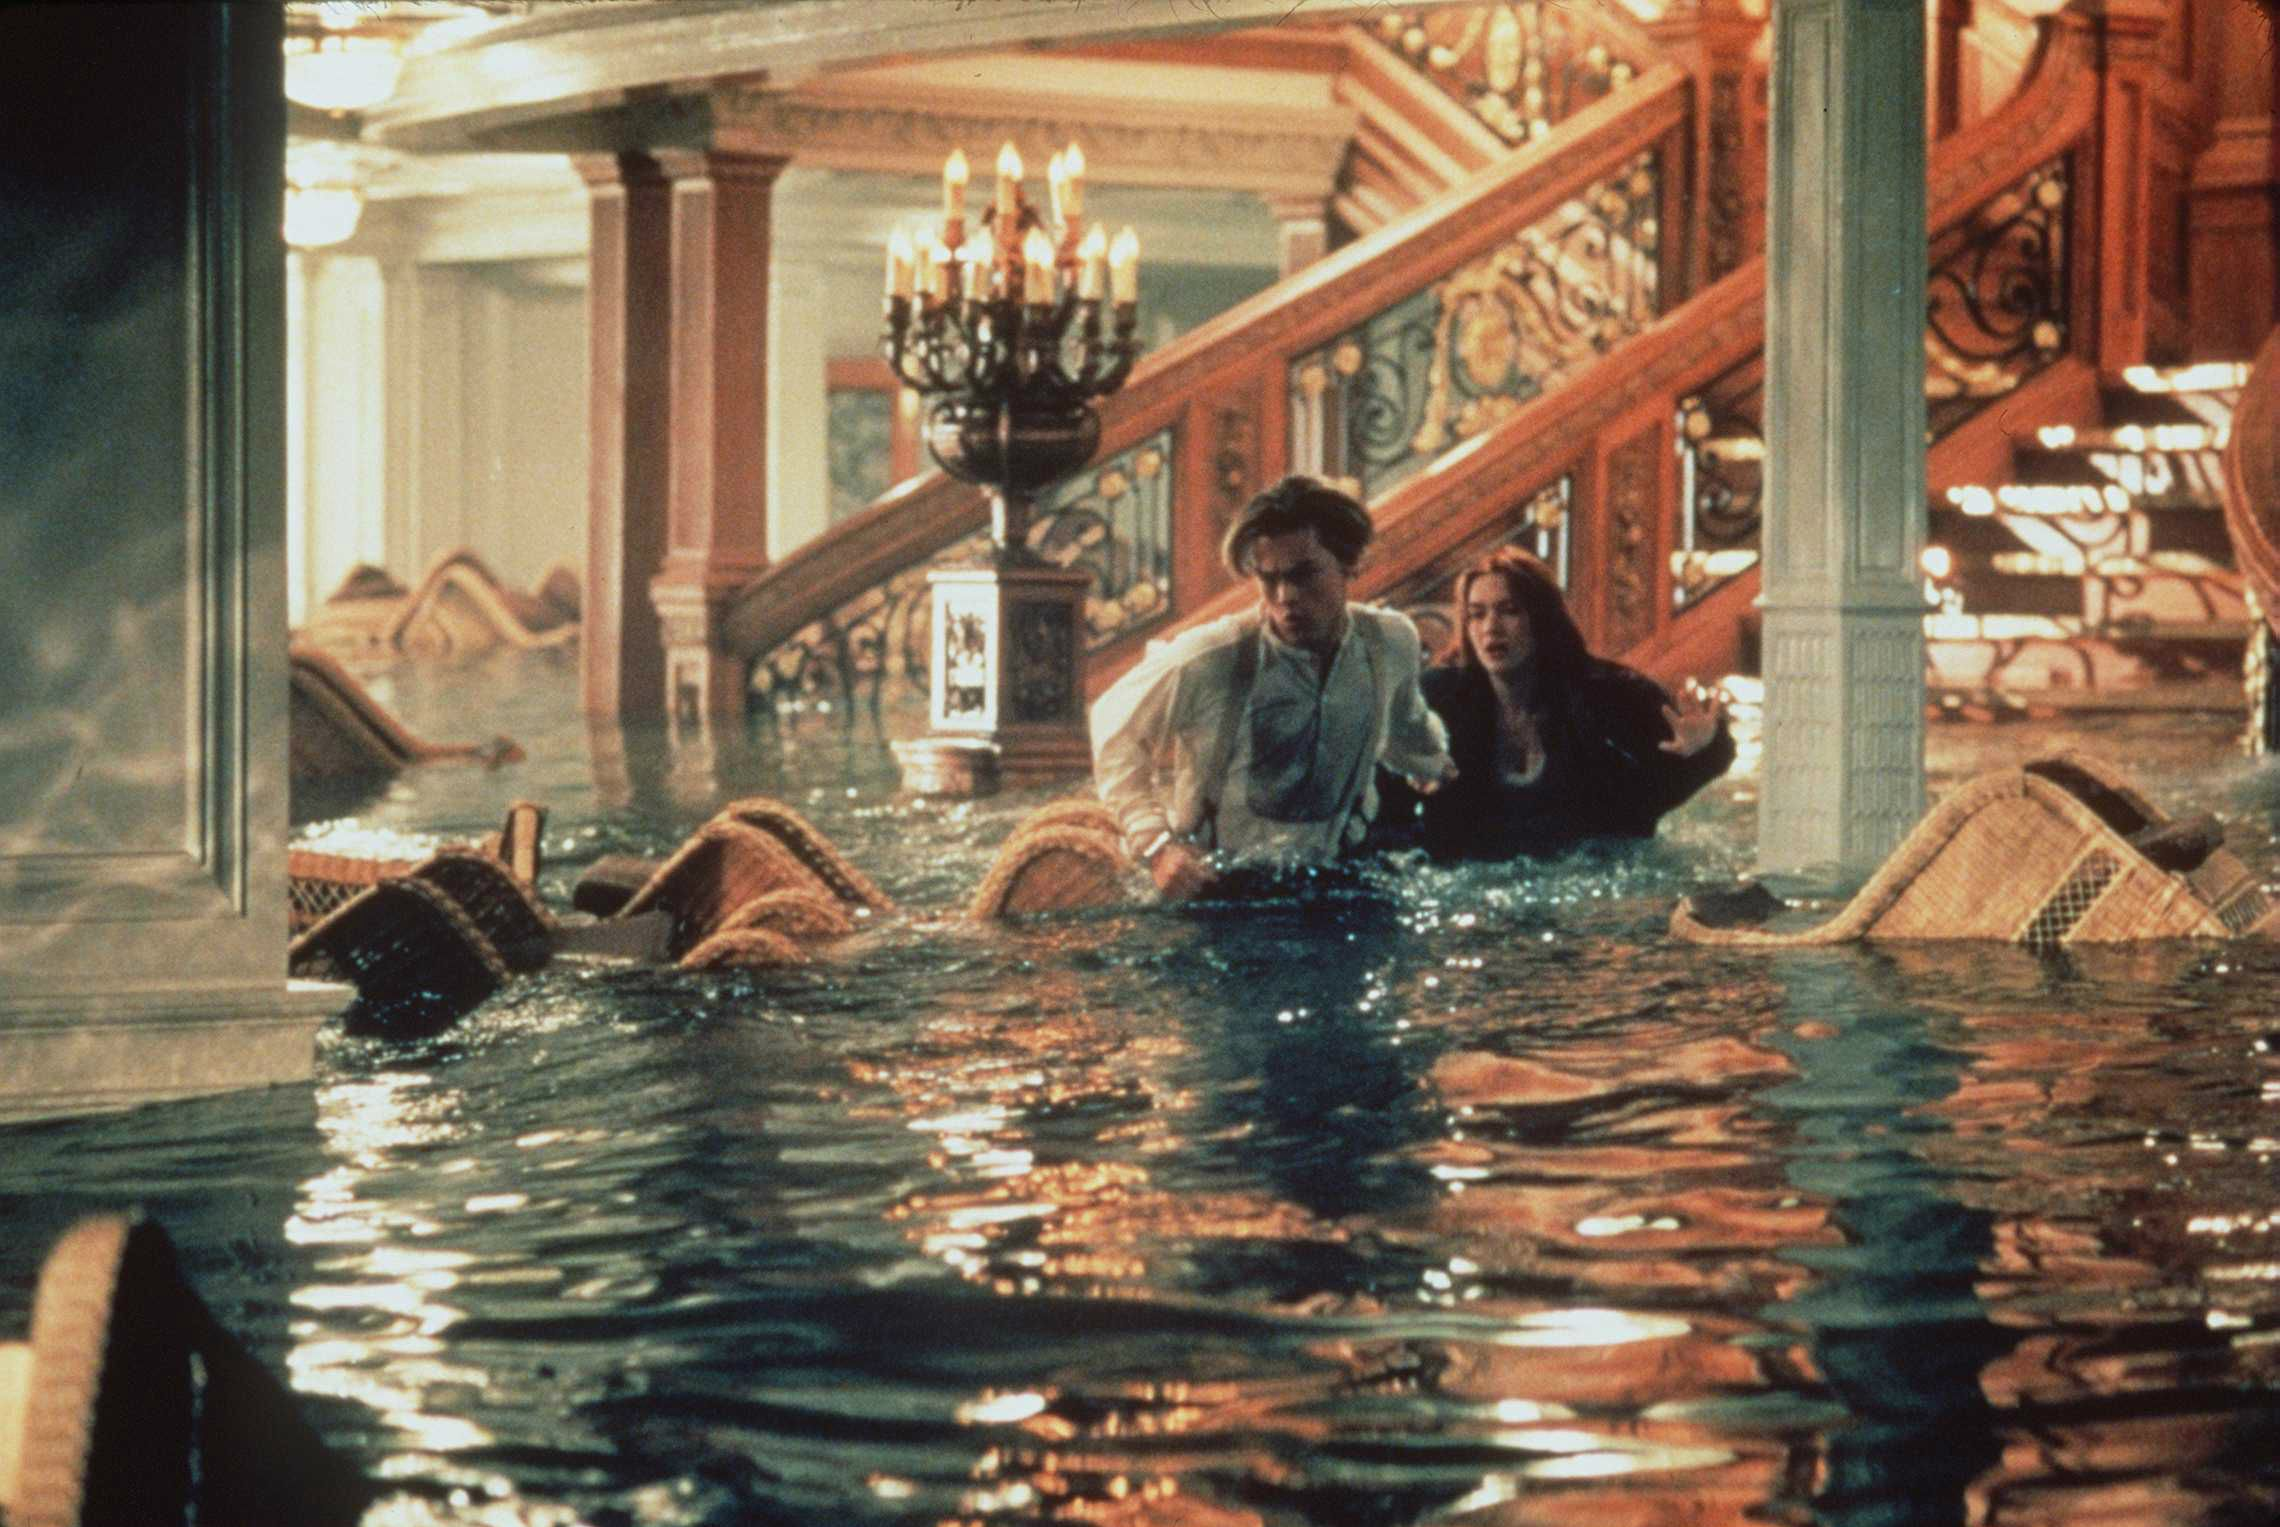 12 �titanic� movie facts you probably didnt know